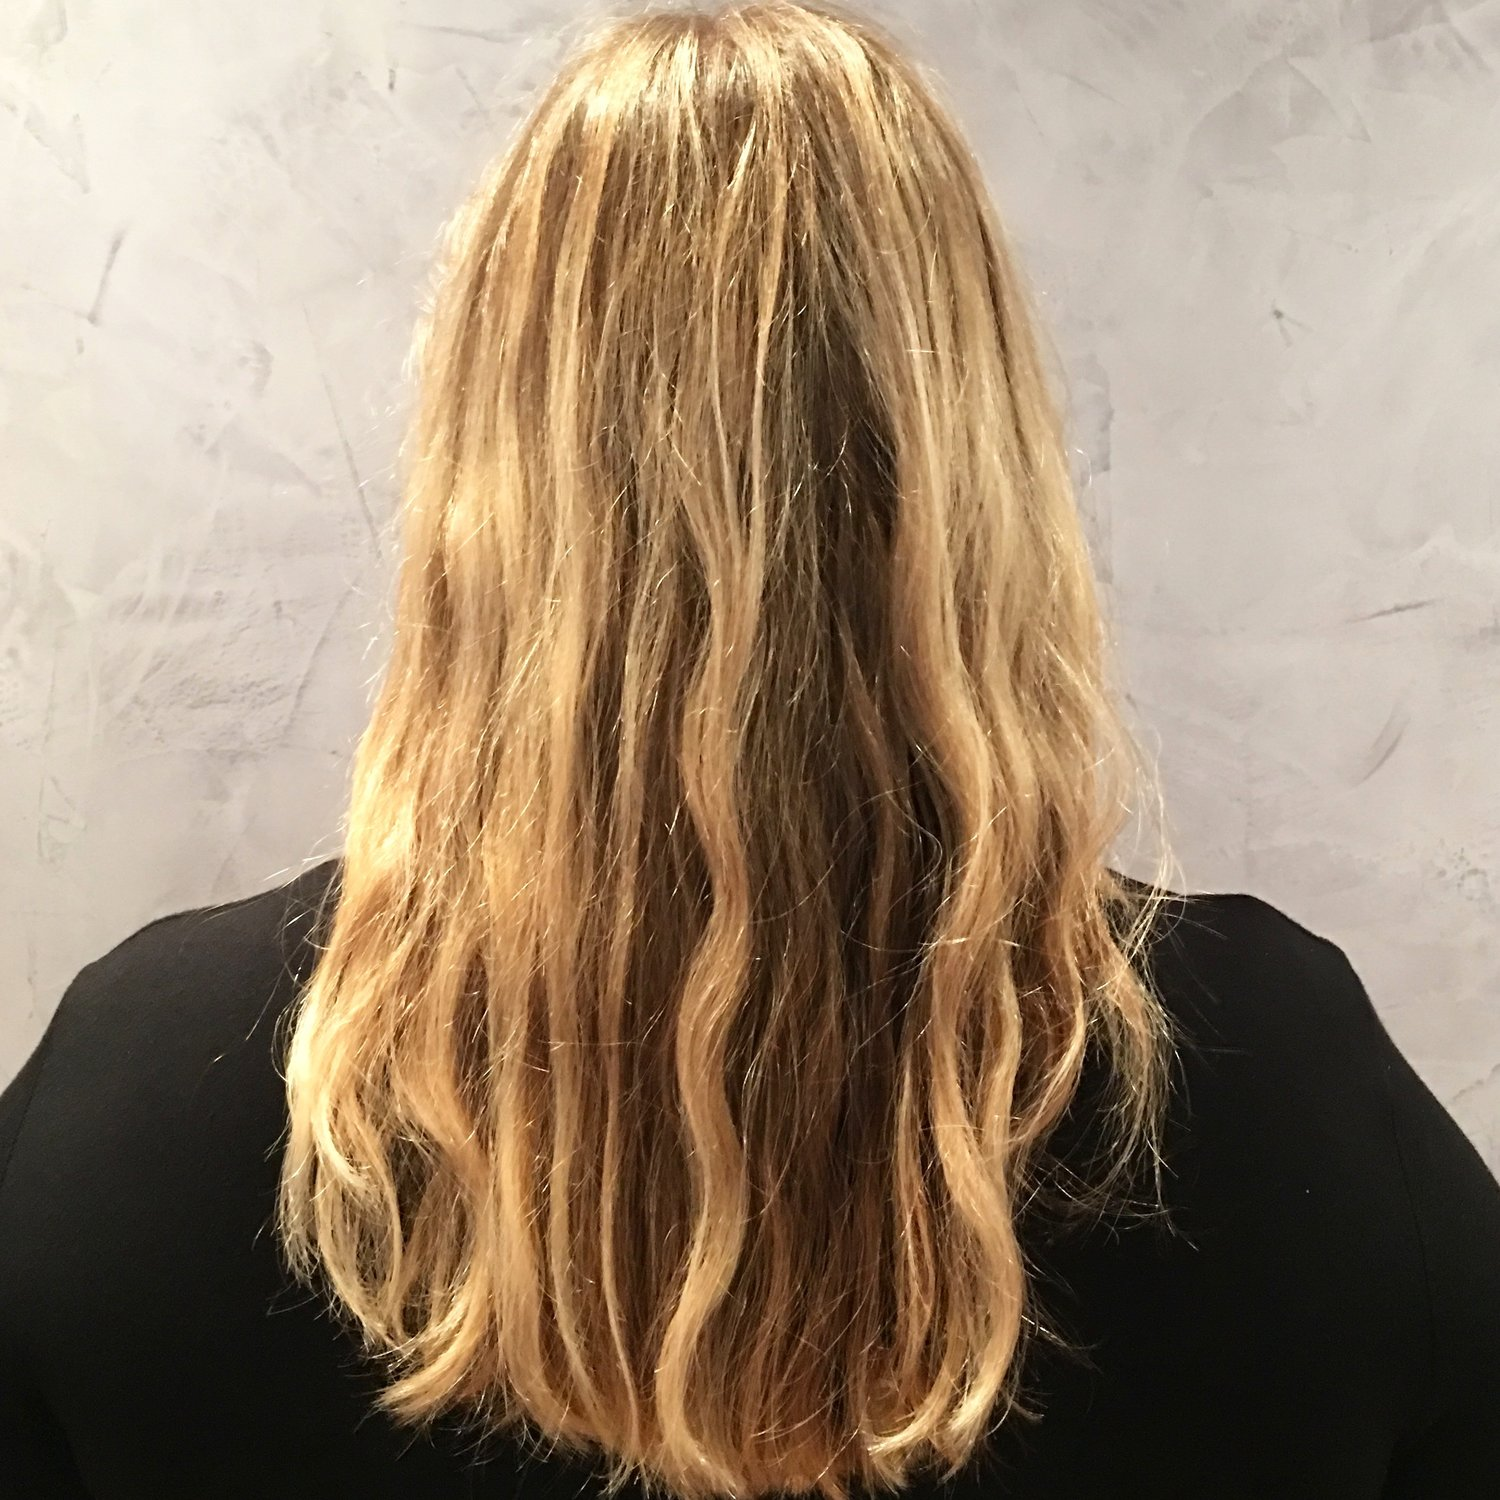 How To Wear Your Natural Waves Laura Braunstein Hair Studio